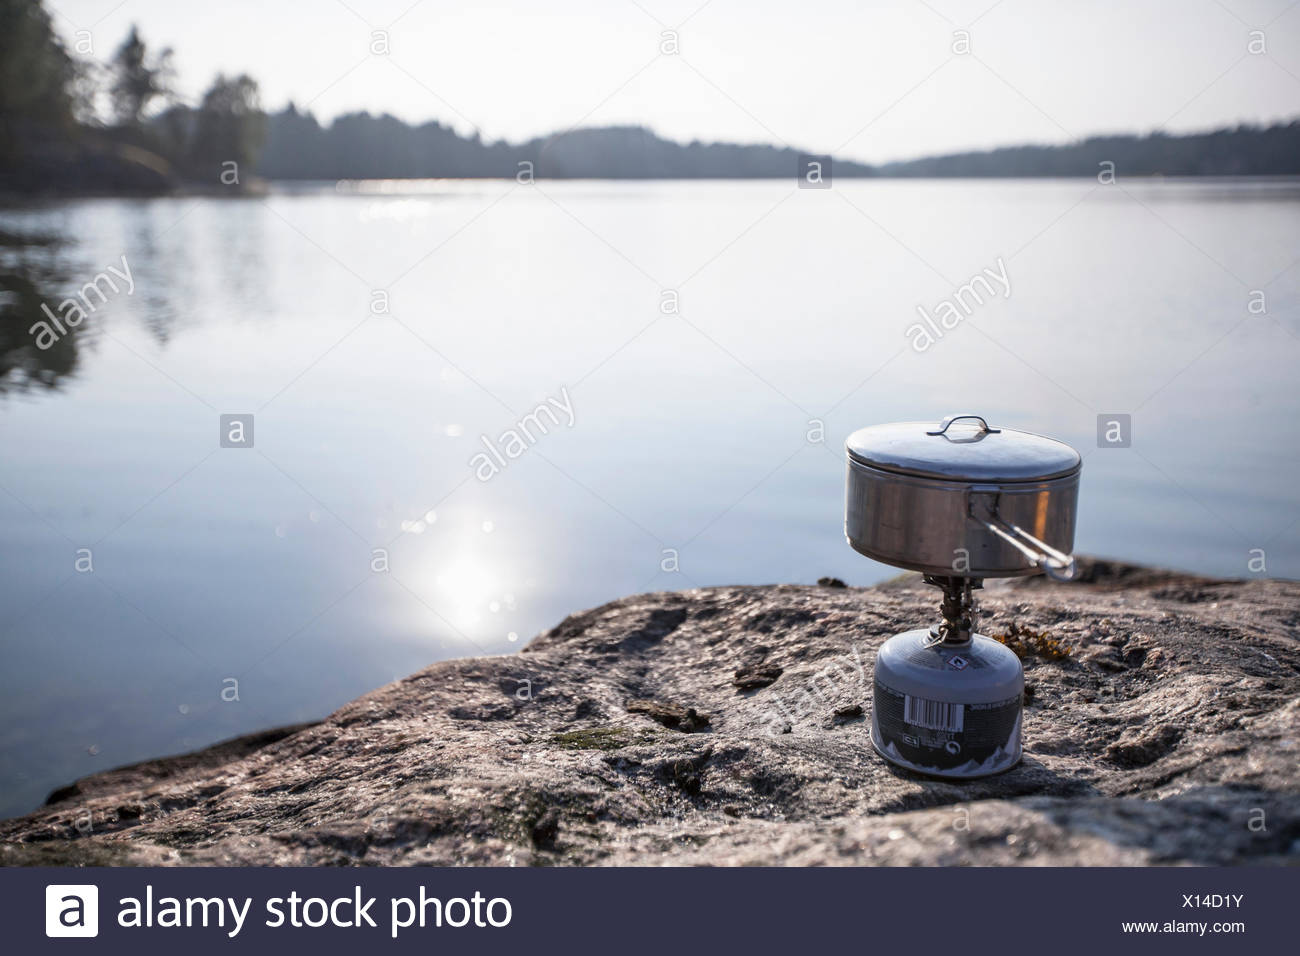 Cooking utensil on camping stove at lakeshore - Stock Image